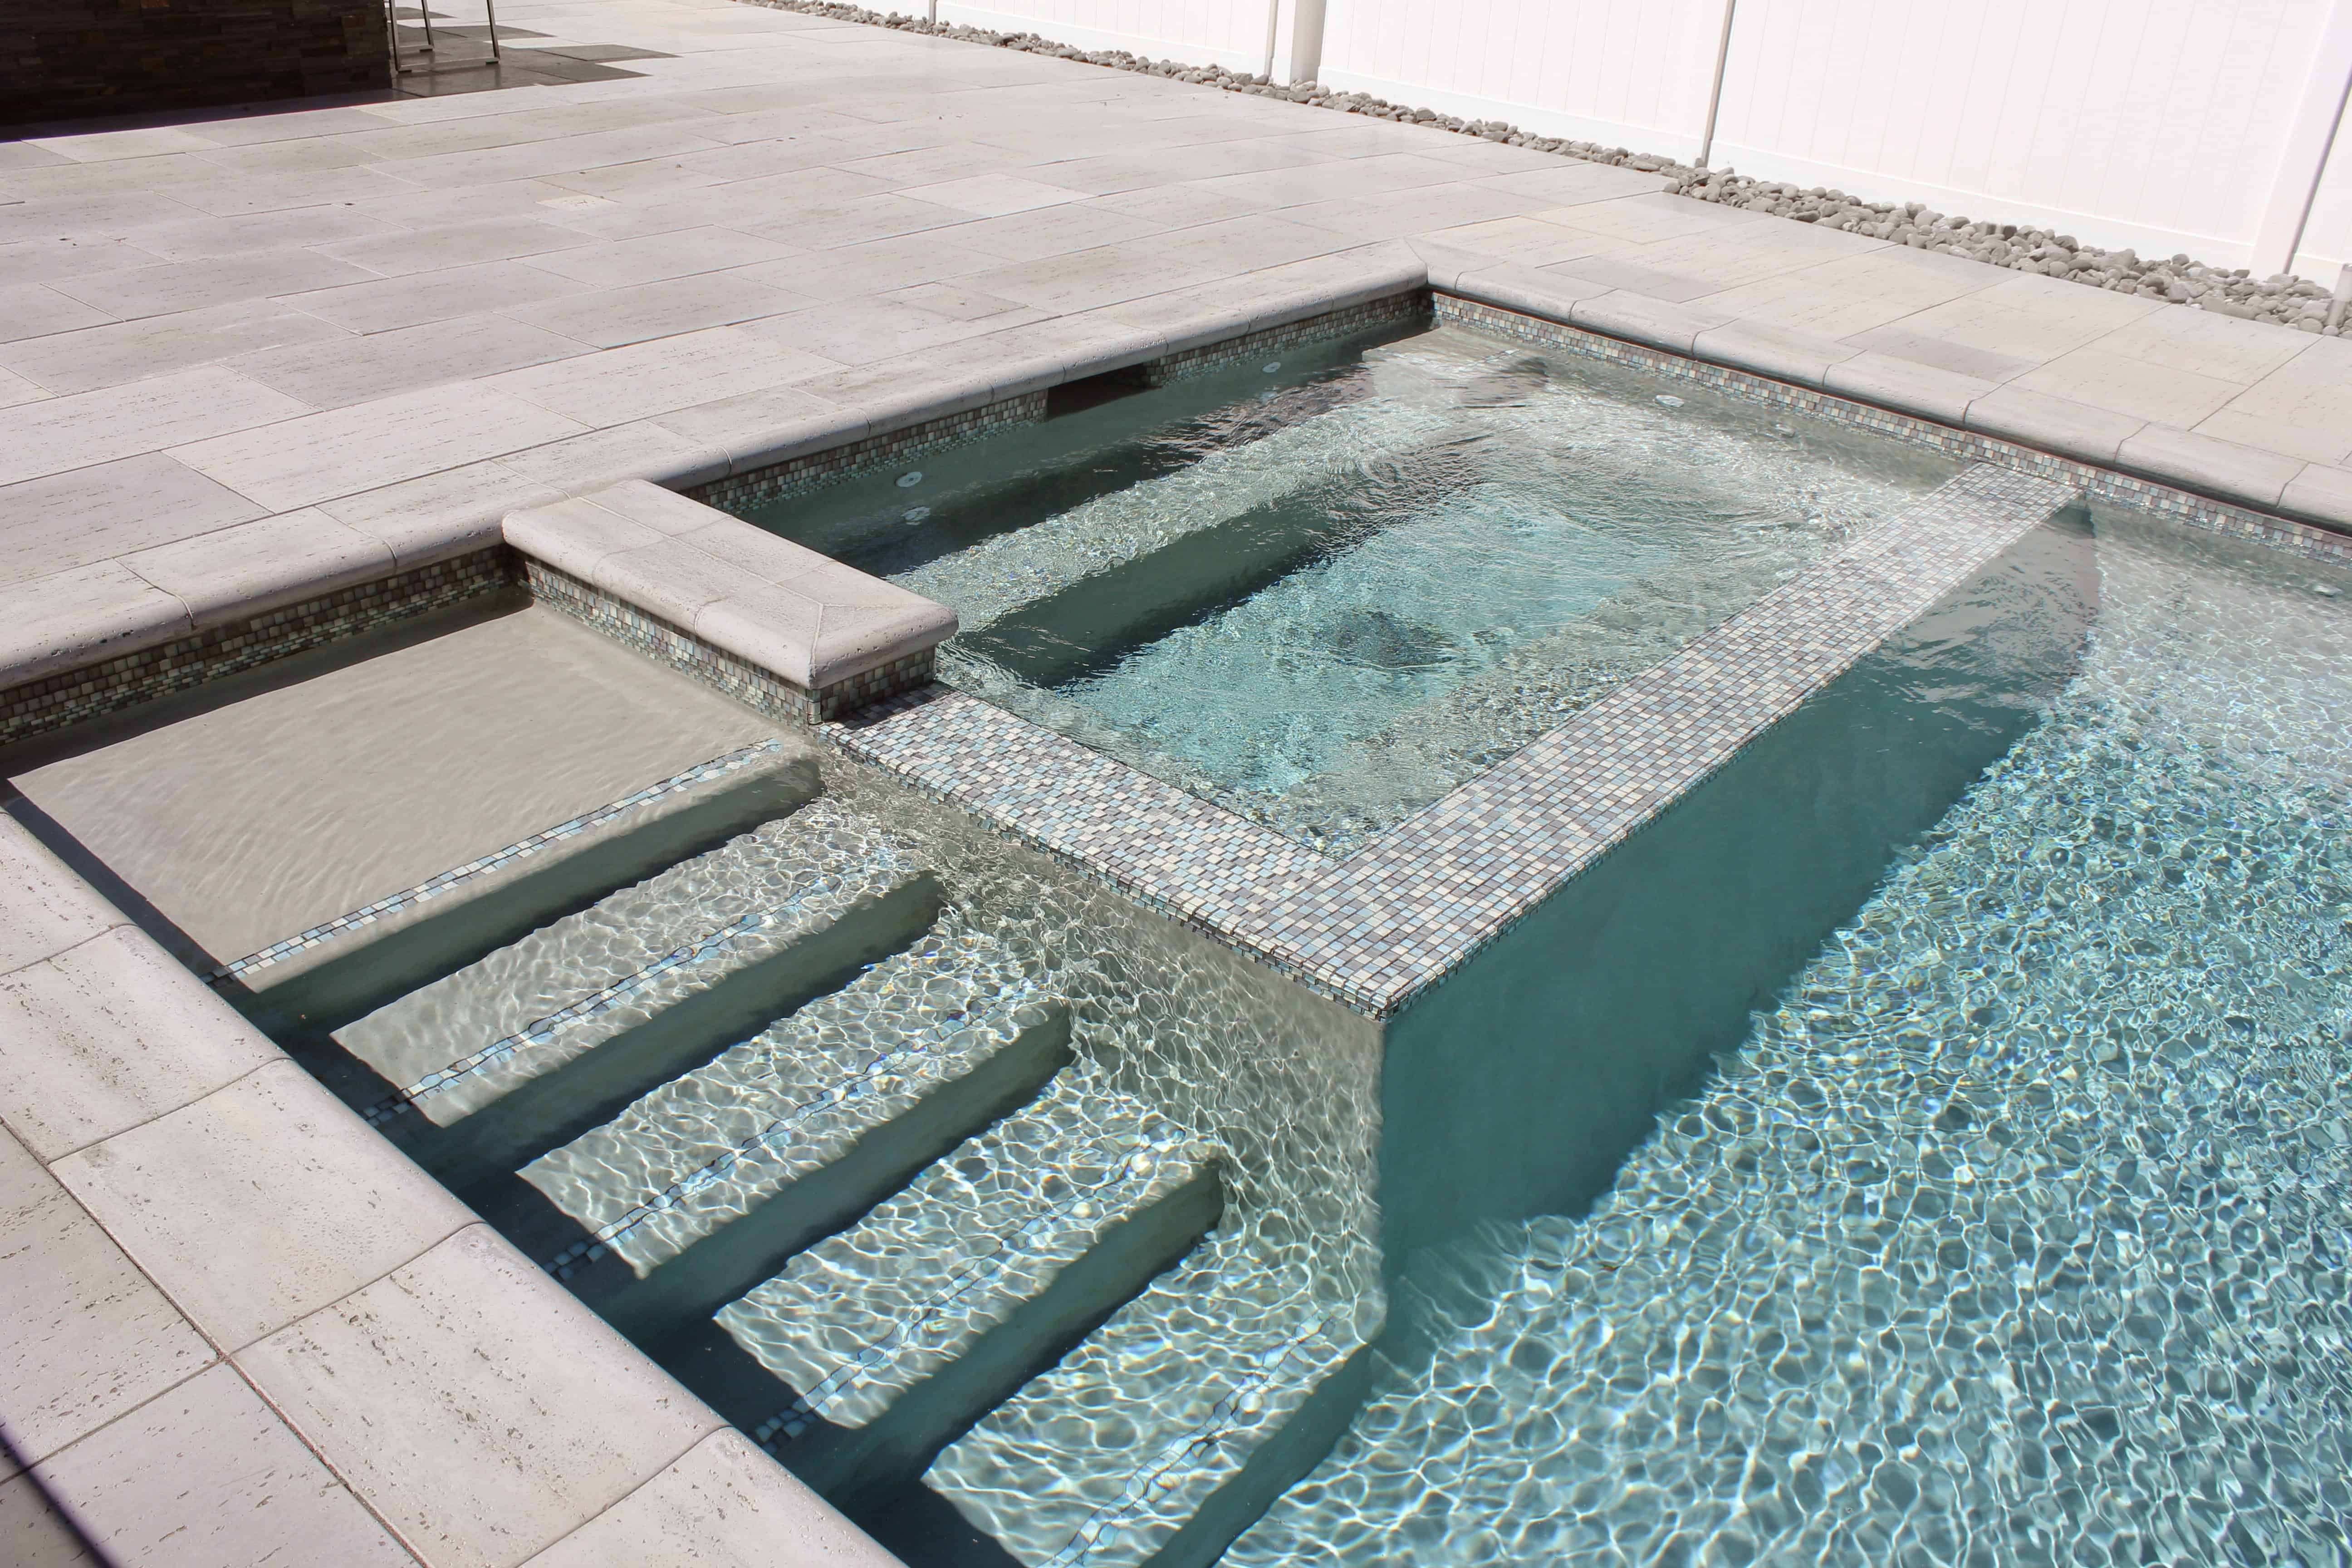 10' x 6' Gunite Spa with Glass Mosaic Tile and Custom Benches - Syosset, Long Island NY